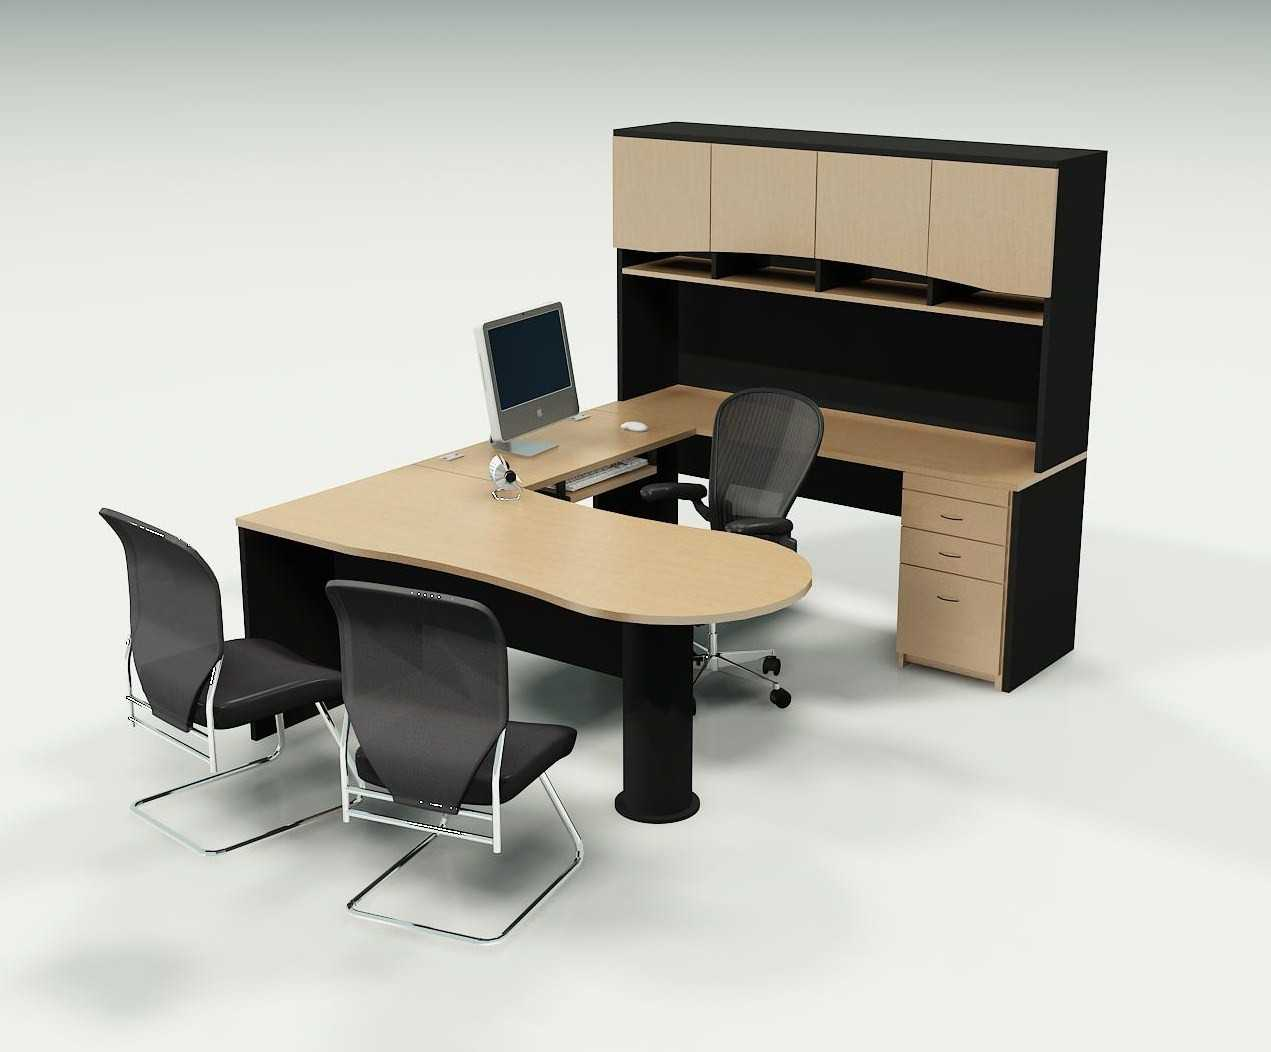 Office furniture ideas in creative style for Creative office furniture ideas